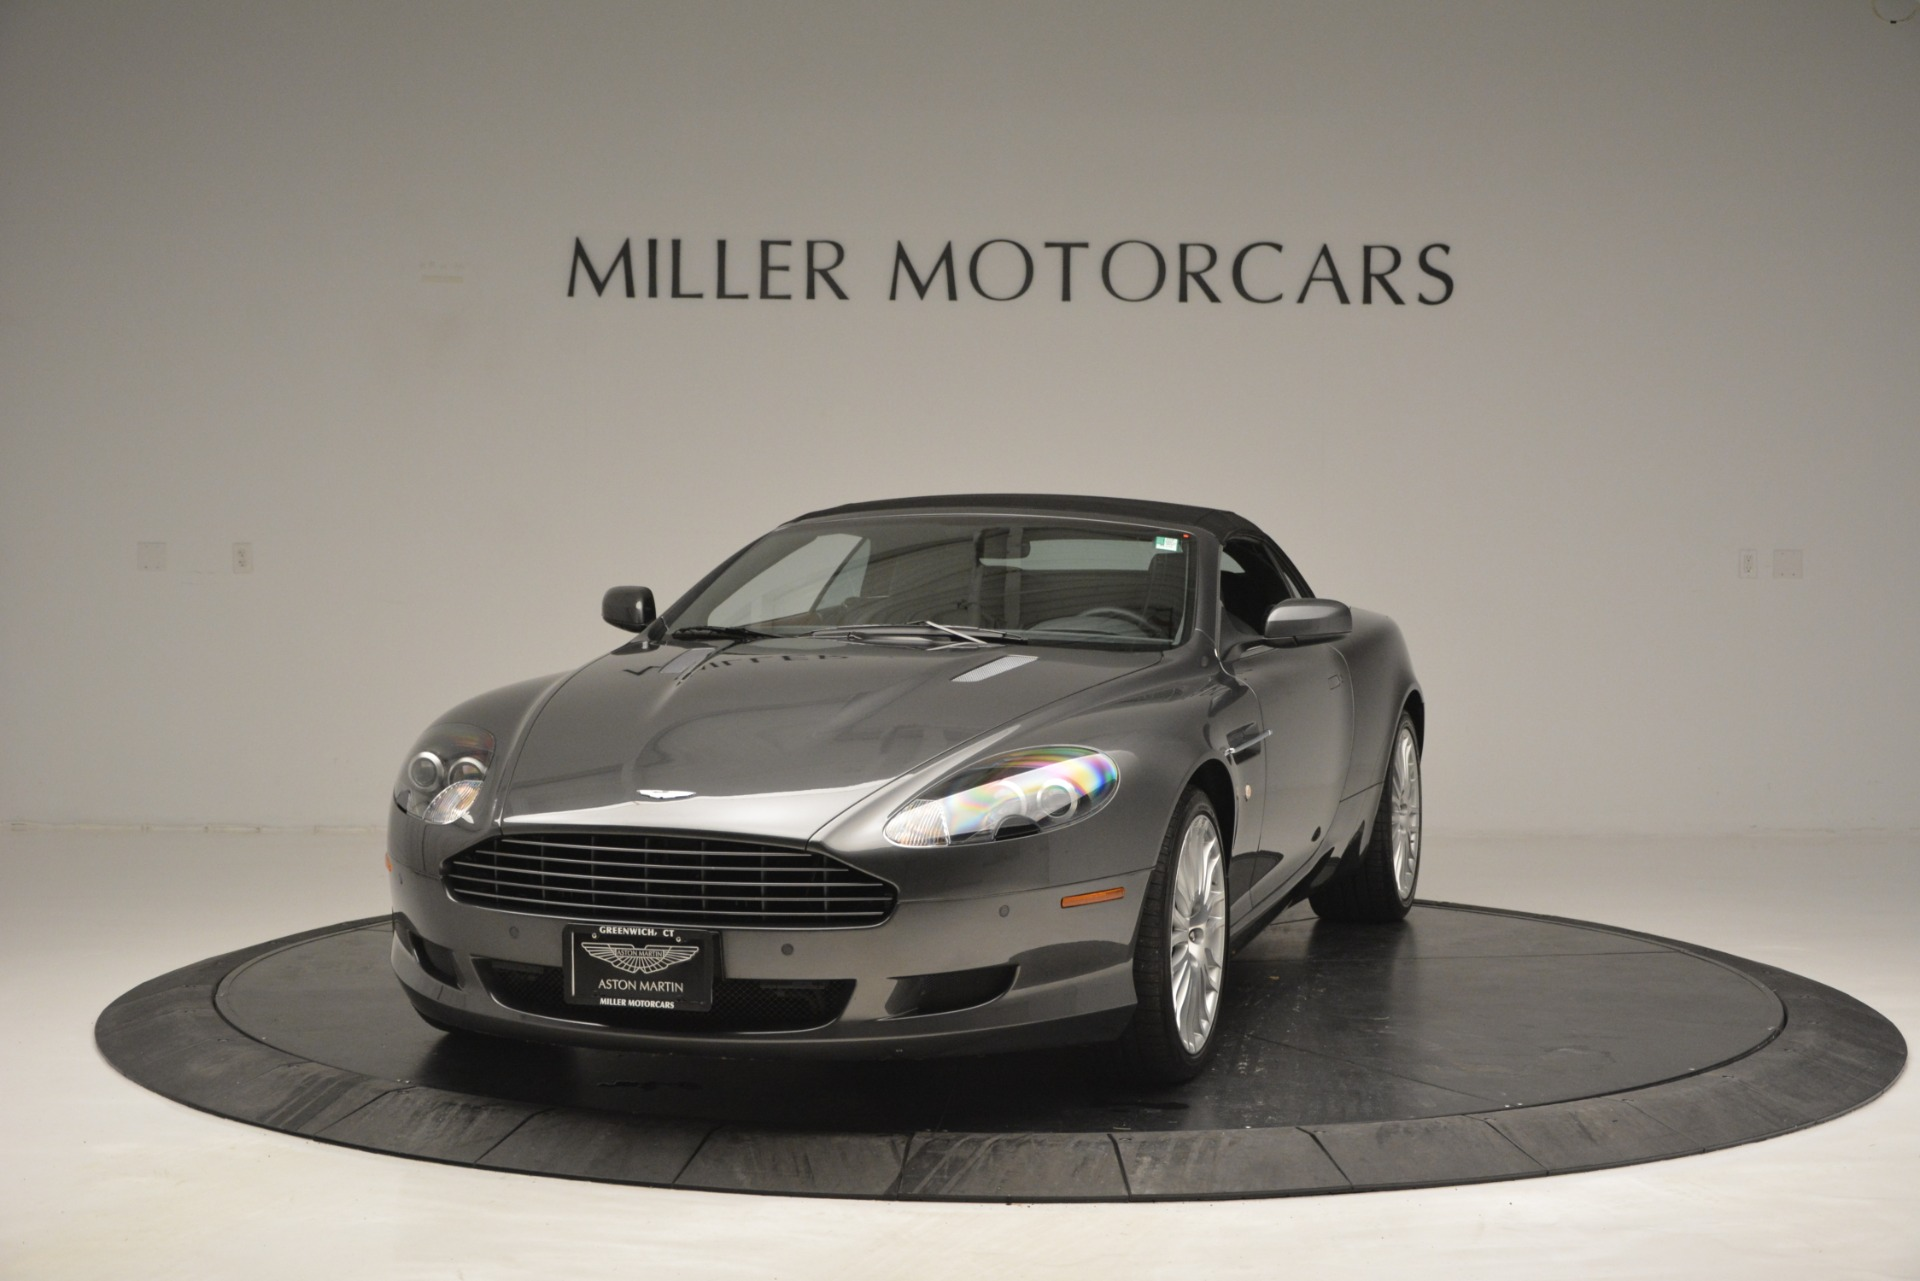 Used 2009 Aston Martin DB9 Convertible For Sale In Westport, CT 2930_p17